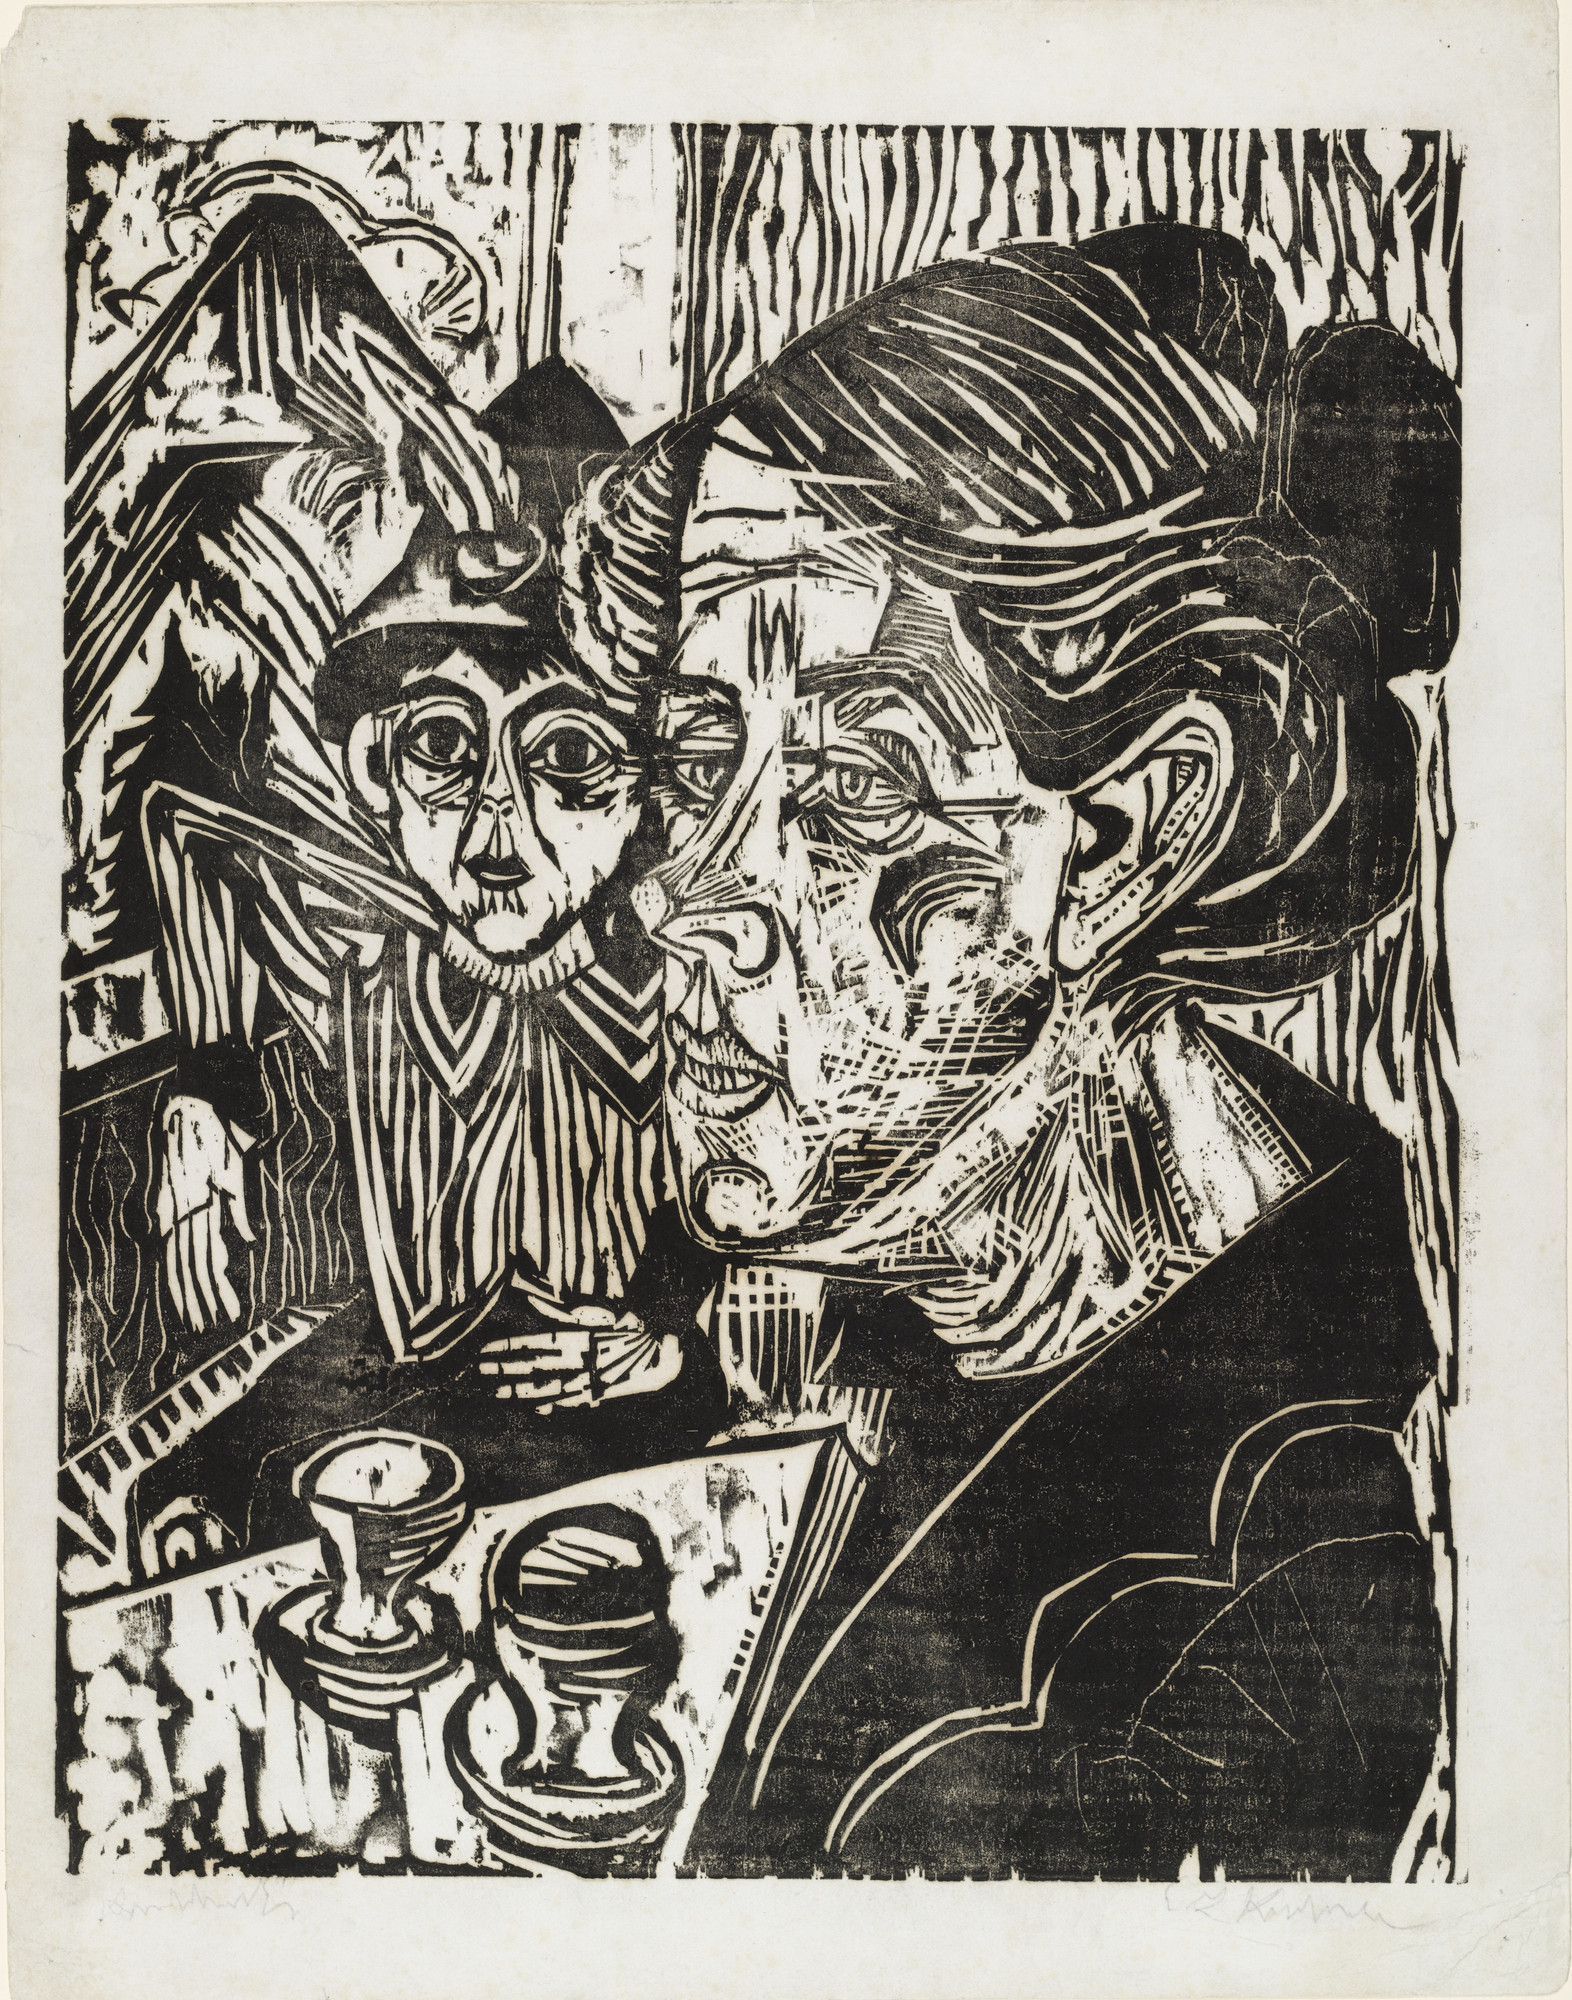 Ernst Ludwig Kirchner. Peasant Woman with Boy at Table (Bäuerin mit Knaben am Tisch). (1917)